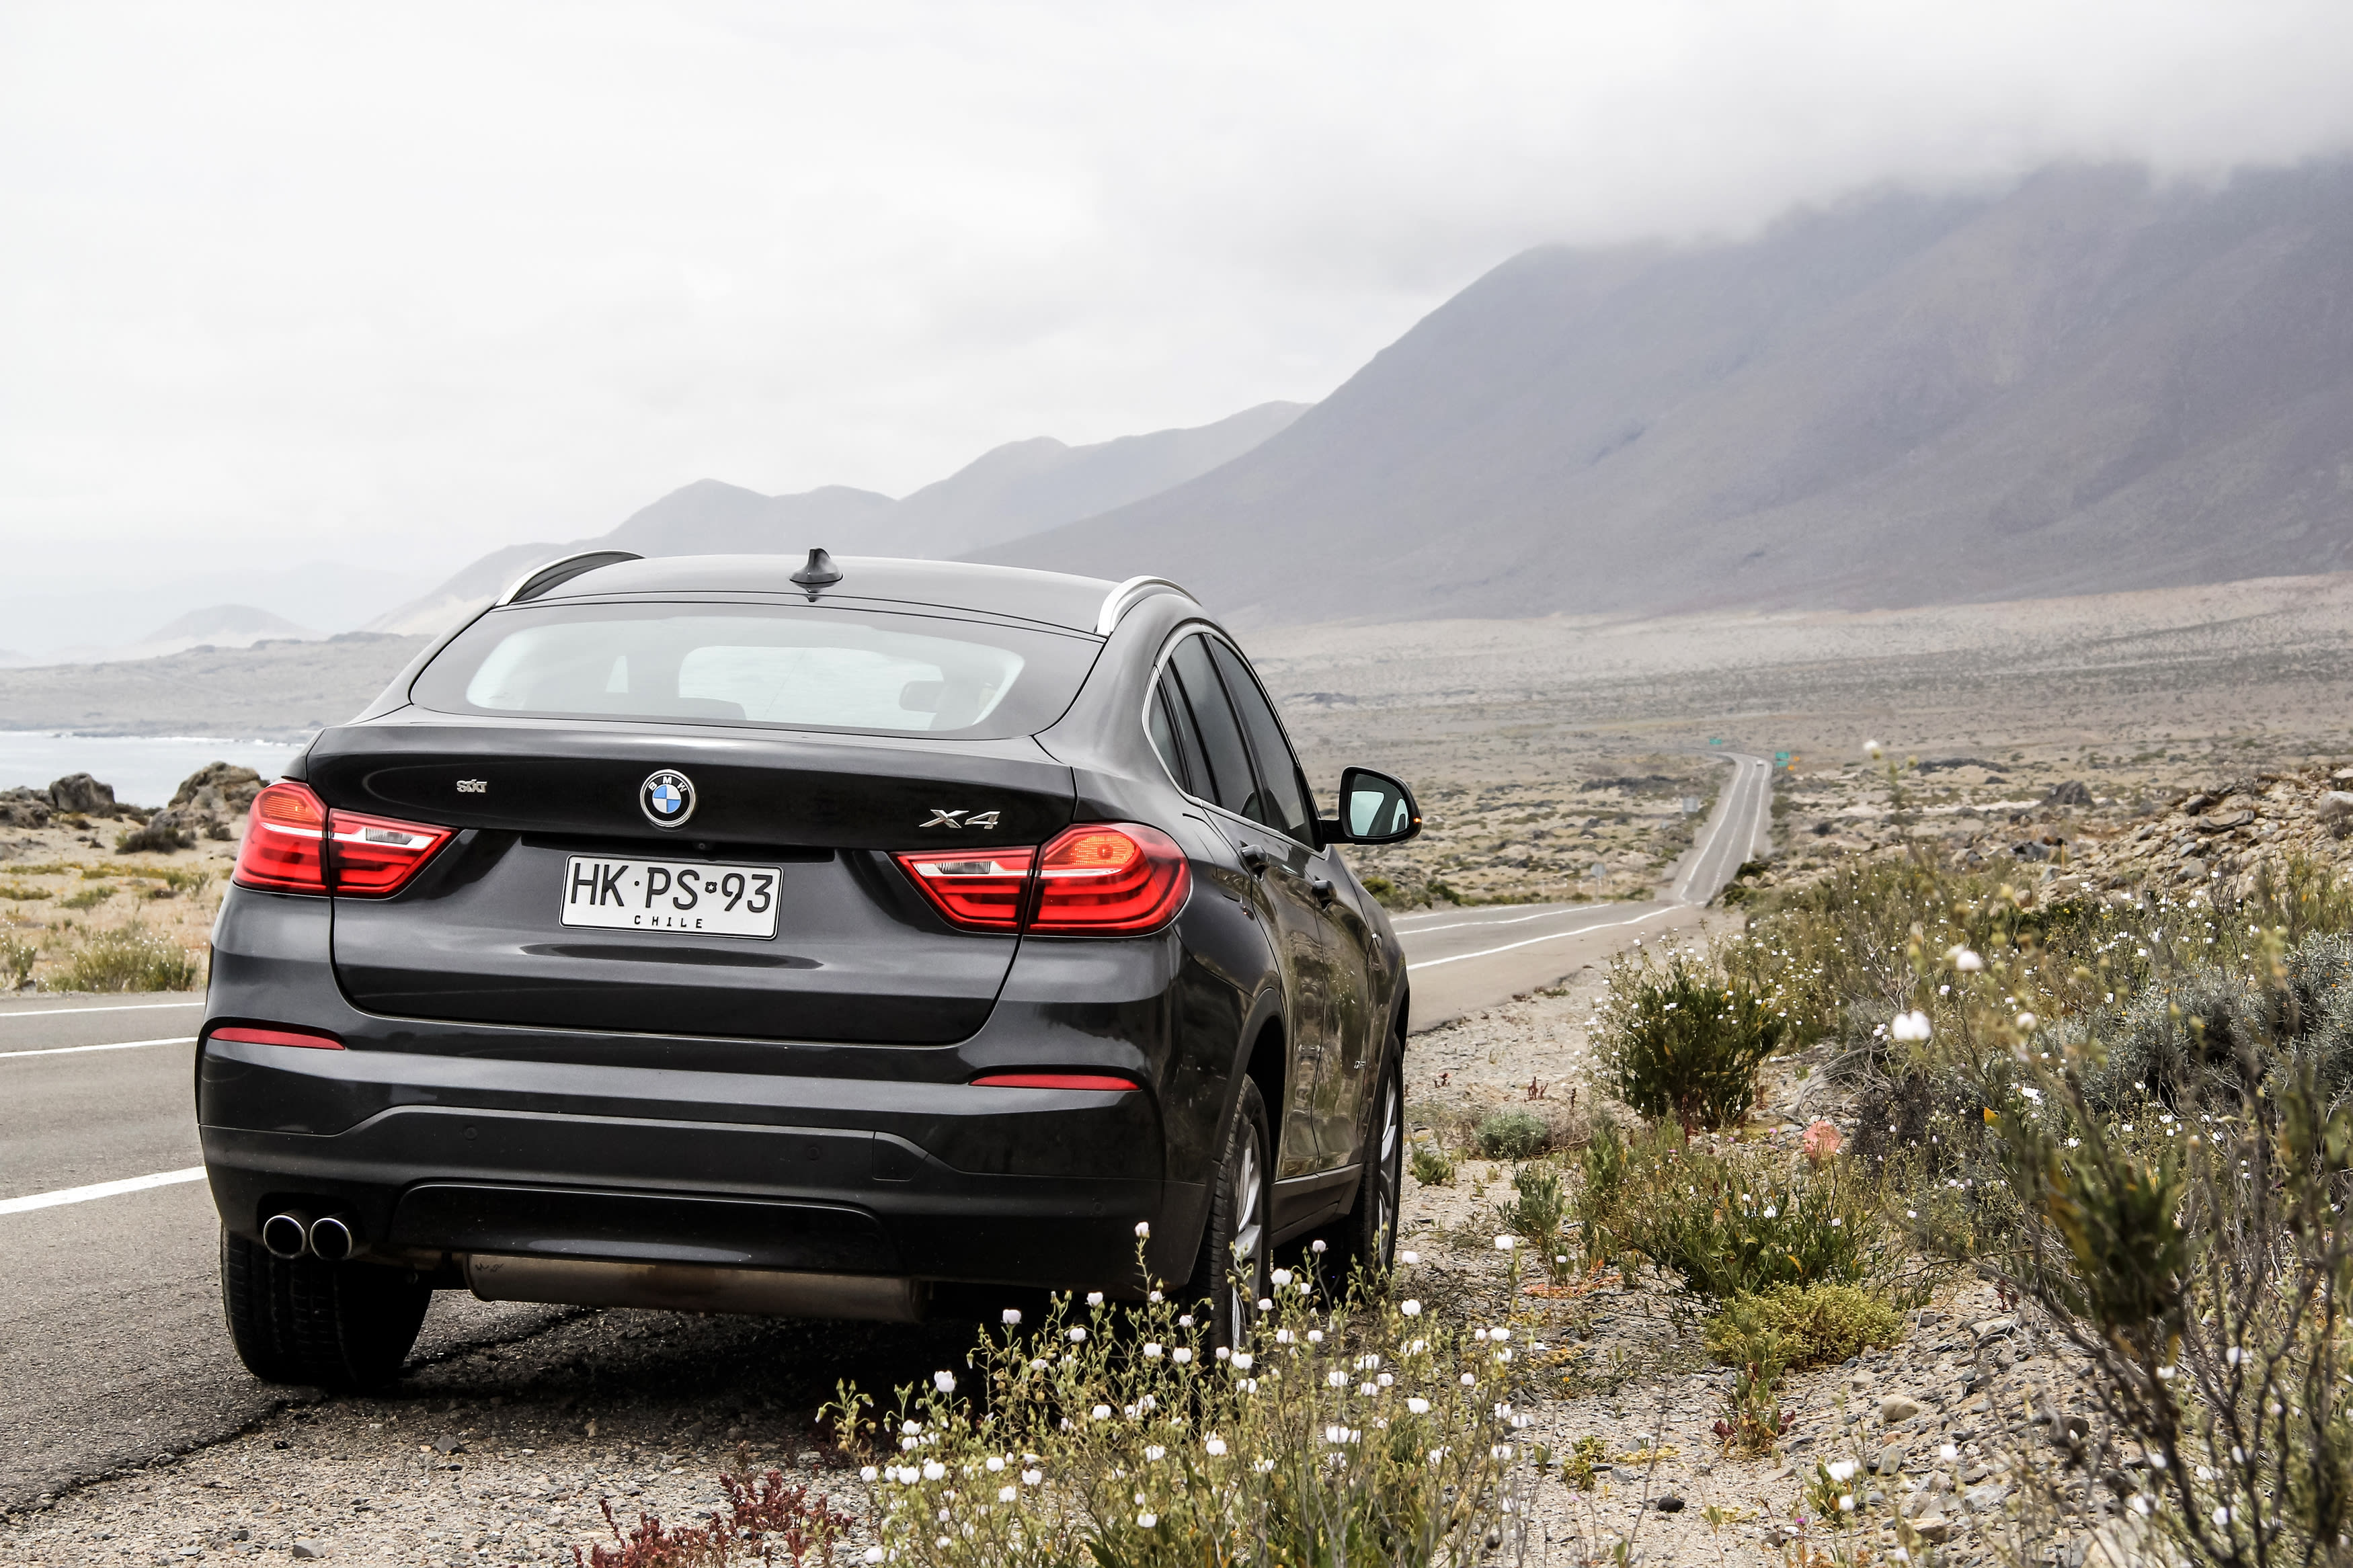 Seat Defect Spurs Recall of BMW SUVs